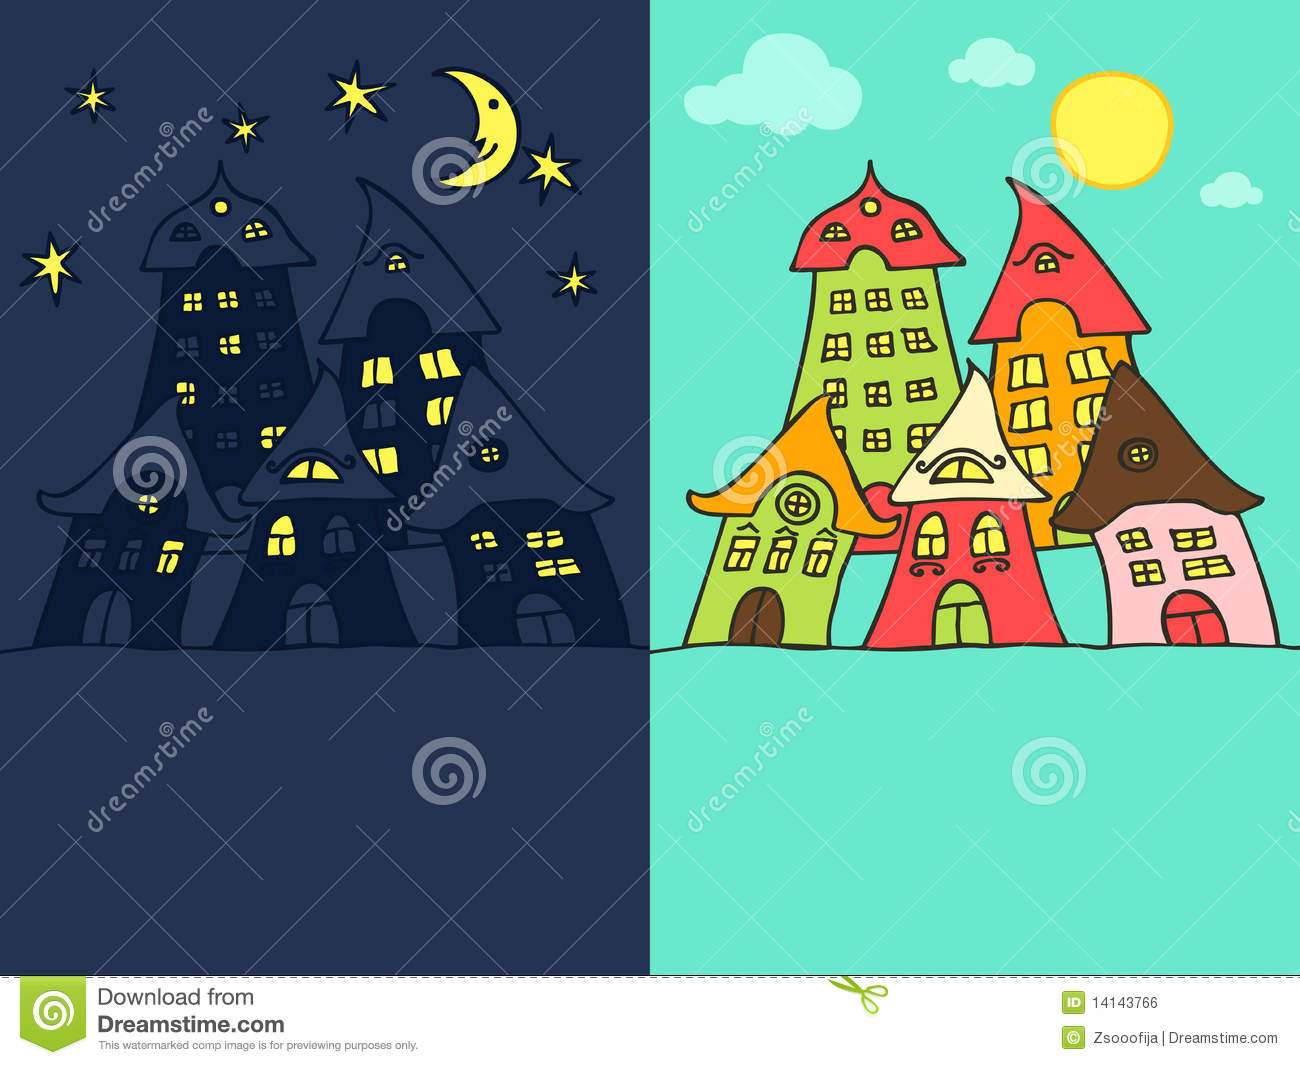 Cute cartoon street night and day version with space for your text